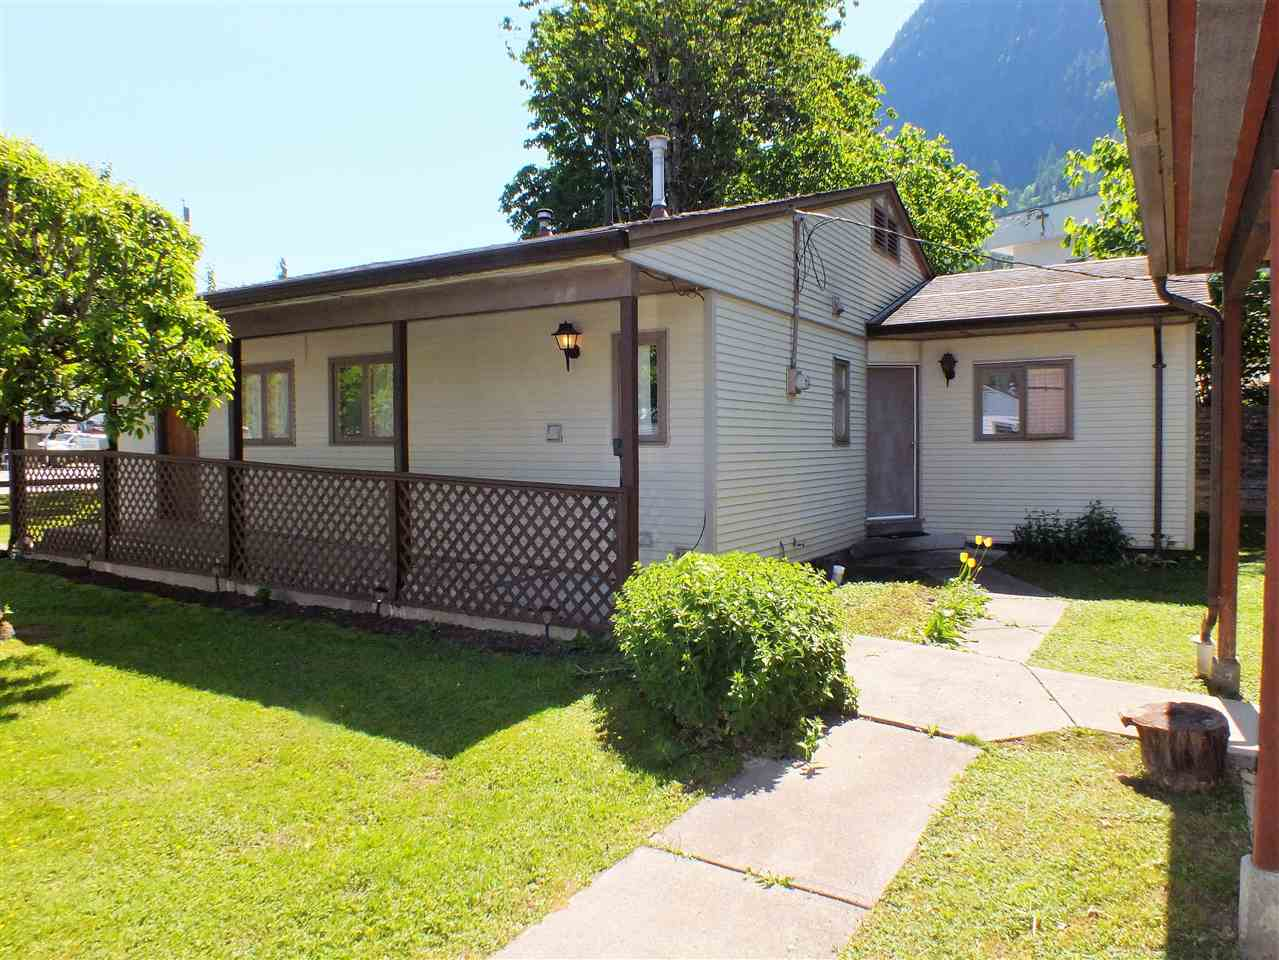 SOLID 2 BDRM 1-1/2 BATH 1248 SQ FT RANCHER WITH DETACHED 28X36 WORKSHOP, BEING SOLD WITH NEIGHBORING 1 BDRM 528 SQ FT BUNGALOW. MAIN HOME FEATURES CUSTOM WOOD TRIM, MANY BUILT -INS, RECENT ROOF, COVERED FRONT WALK AND 4 APPLIANCES. SHOP CONSISTS OF TWO STORAGE ROOMS AND 25X27 PARKING BAY OR WORKSPACE WHILE SMALL ADJACENT 1 BDRM HOME, ON ITS OWN PROPERTY, WOULD MAKE A GREAT INLAW DWELLING OR EASY CARE MORTGAGE HELPER. LOCATED JUST A FEW BLOCKS FROM DOWNTOWN CORE, REC FACILITIES AND GROCERY STORE THIS WOULD BE A FANTASTIC RETIREMENT, 1ST TIMER, INVESTMENT OR SHARED USE PURCHASE. TENANT IN SMALL HOME REQUIRES 24 HRS NOTICE AND MAIN HOME AND SHOP ARE VACANT FOR QUICK POSSESSION IF TENANT IN RENTAL TO STAY. ESTATE SALE BEING SOLD AS IS.